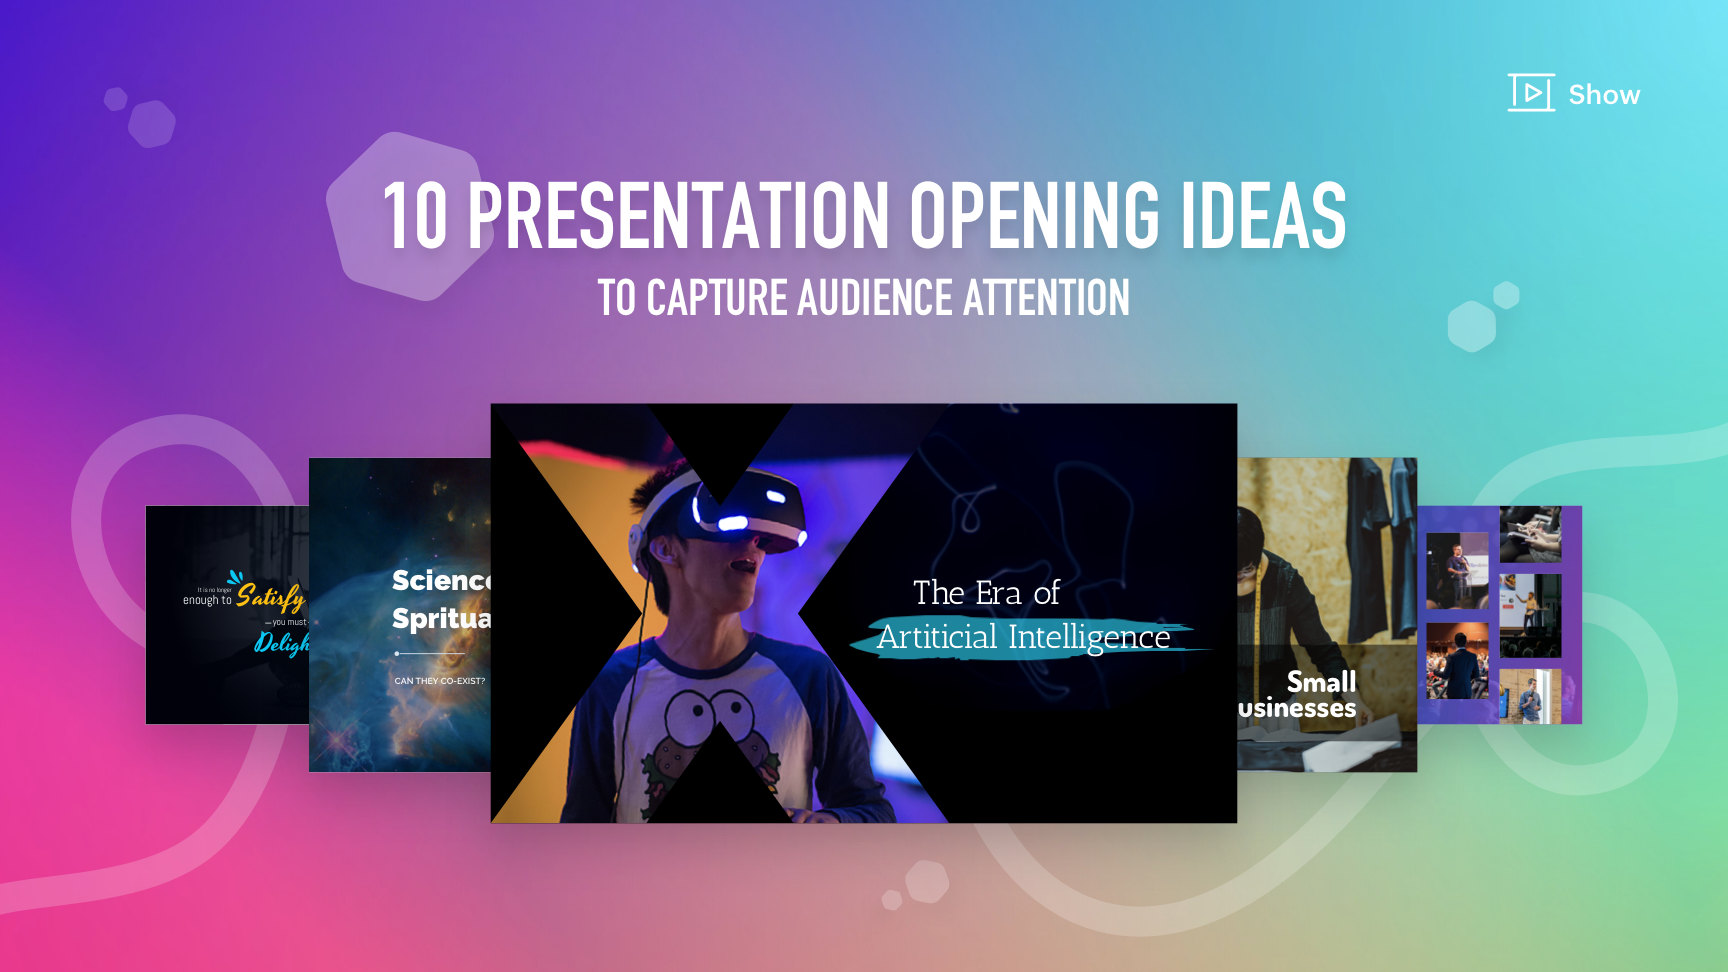 10 presentation opening ideas to capture audience attention